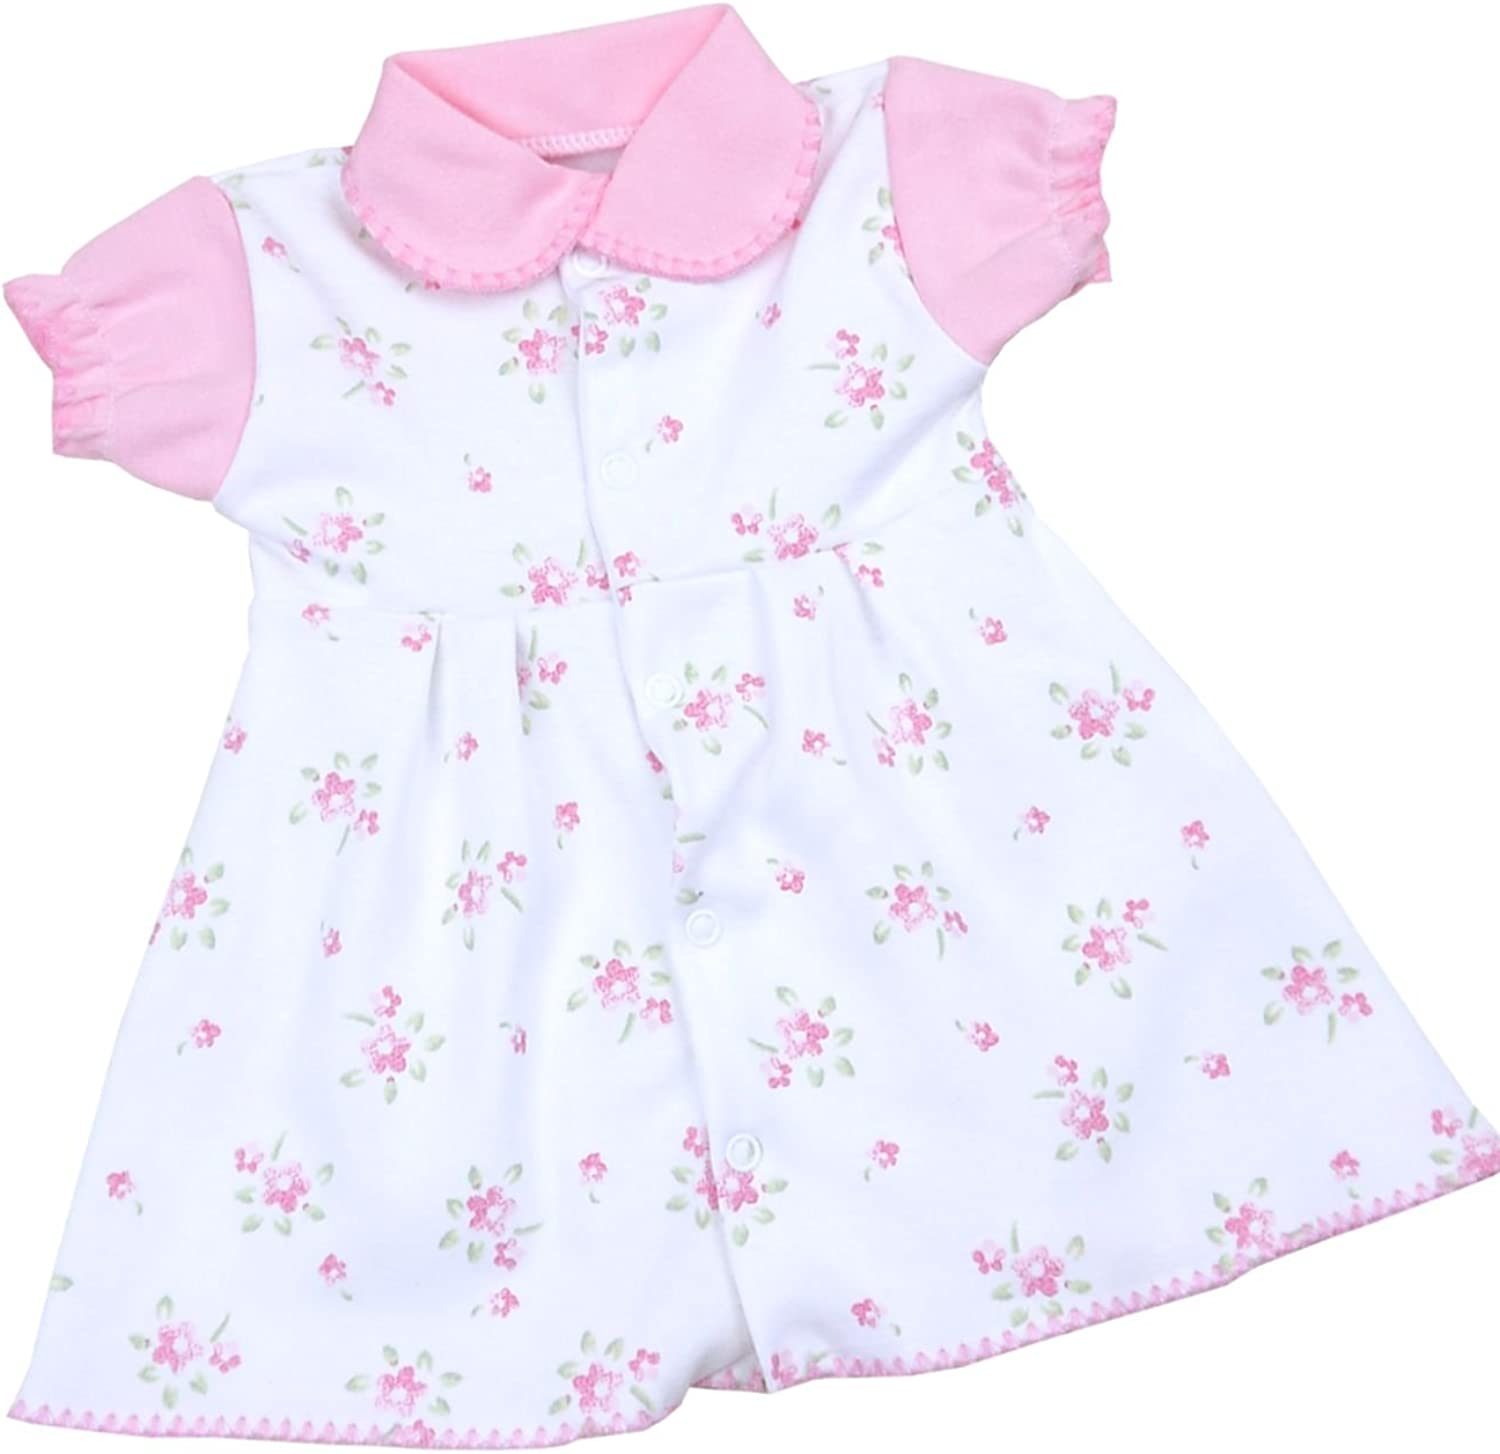 Baby Girls Reborn Doll Dress Built in bodysuit From 3lbs up to 7Lbs Four Styles